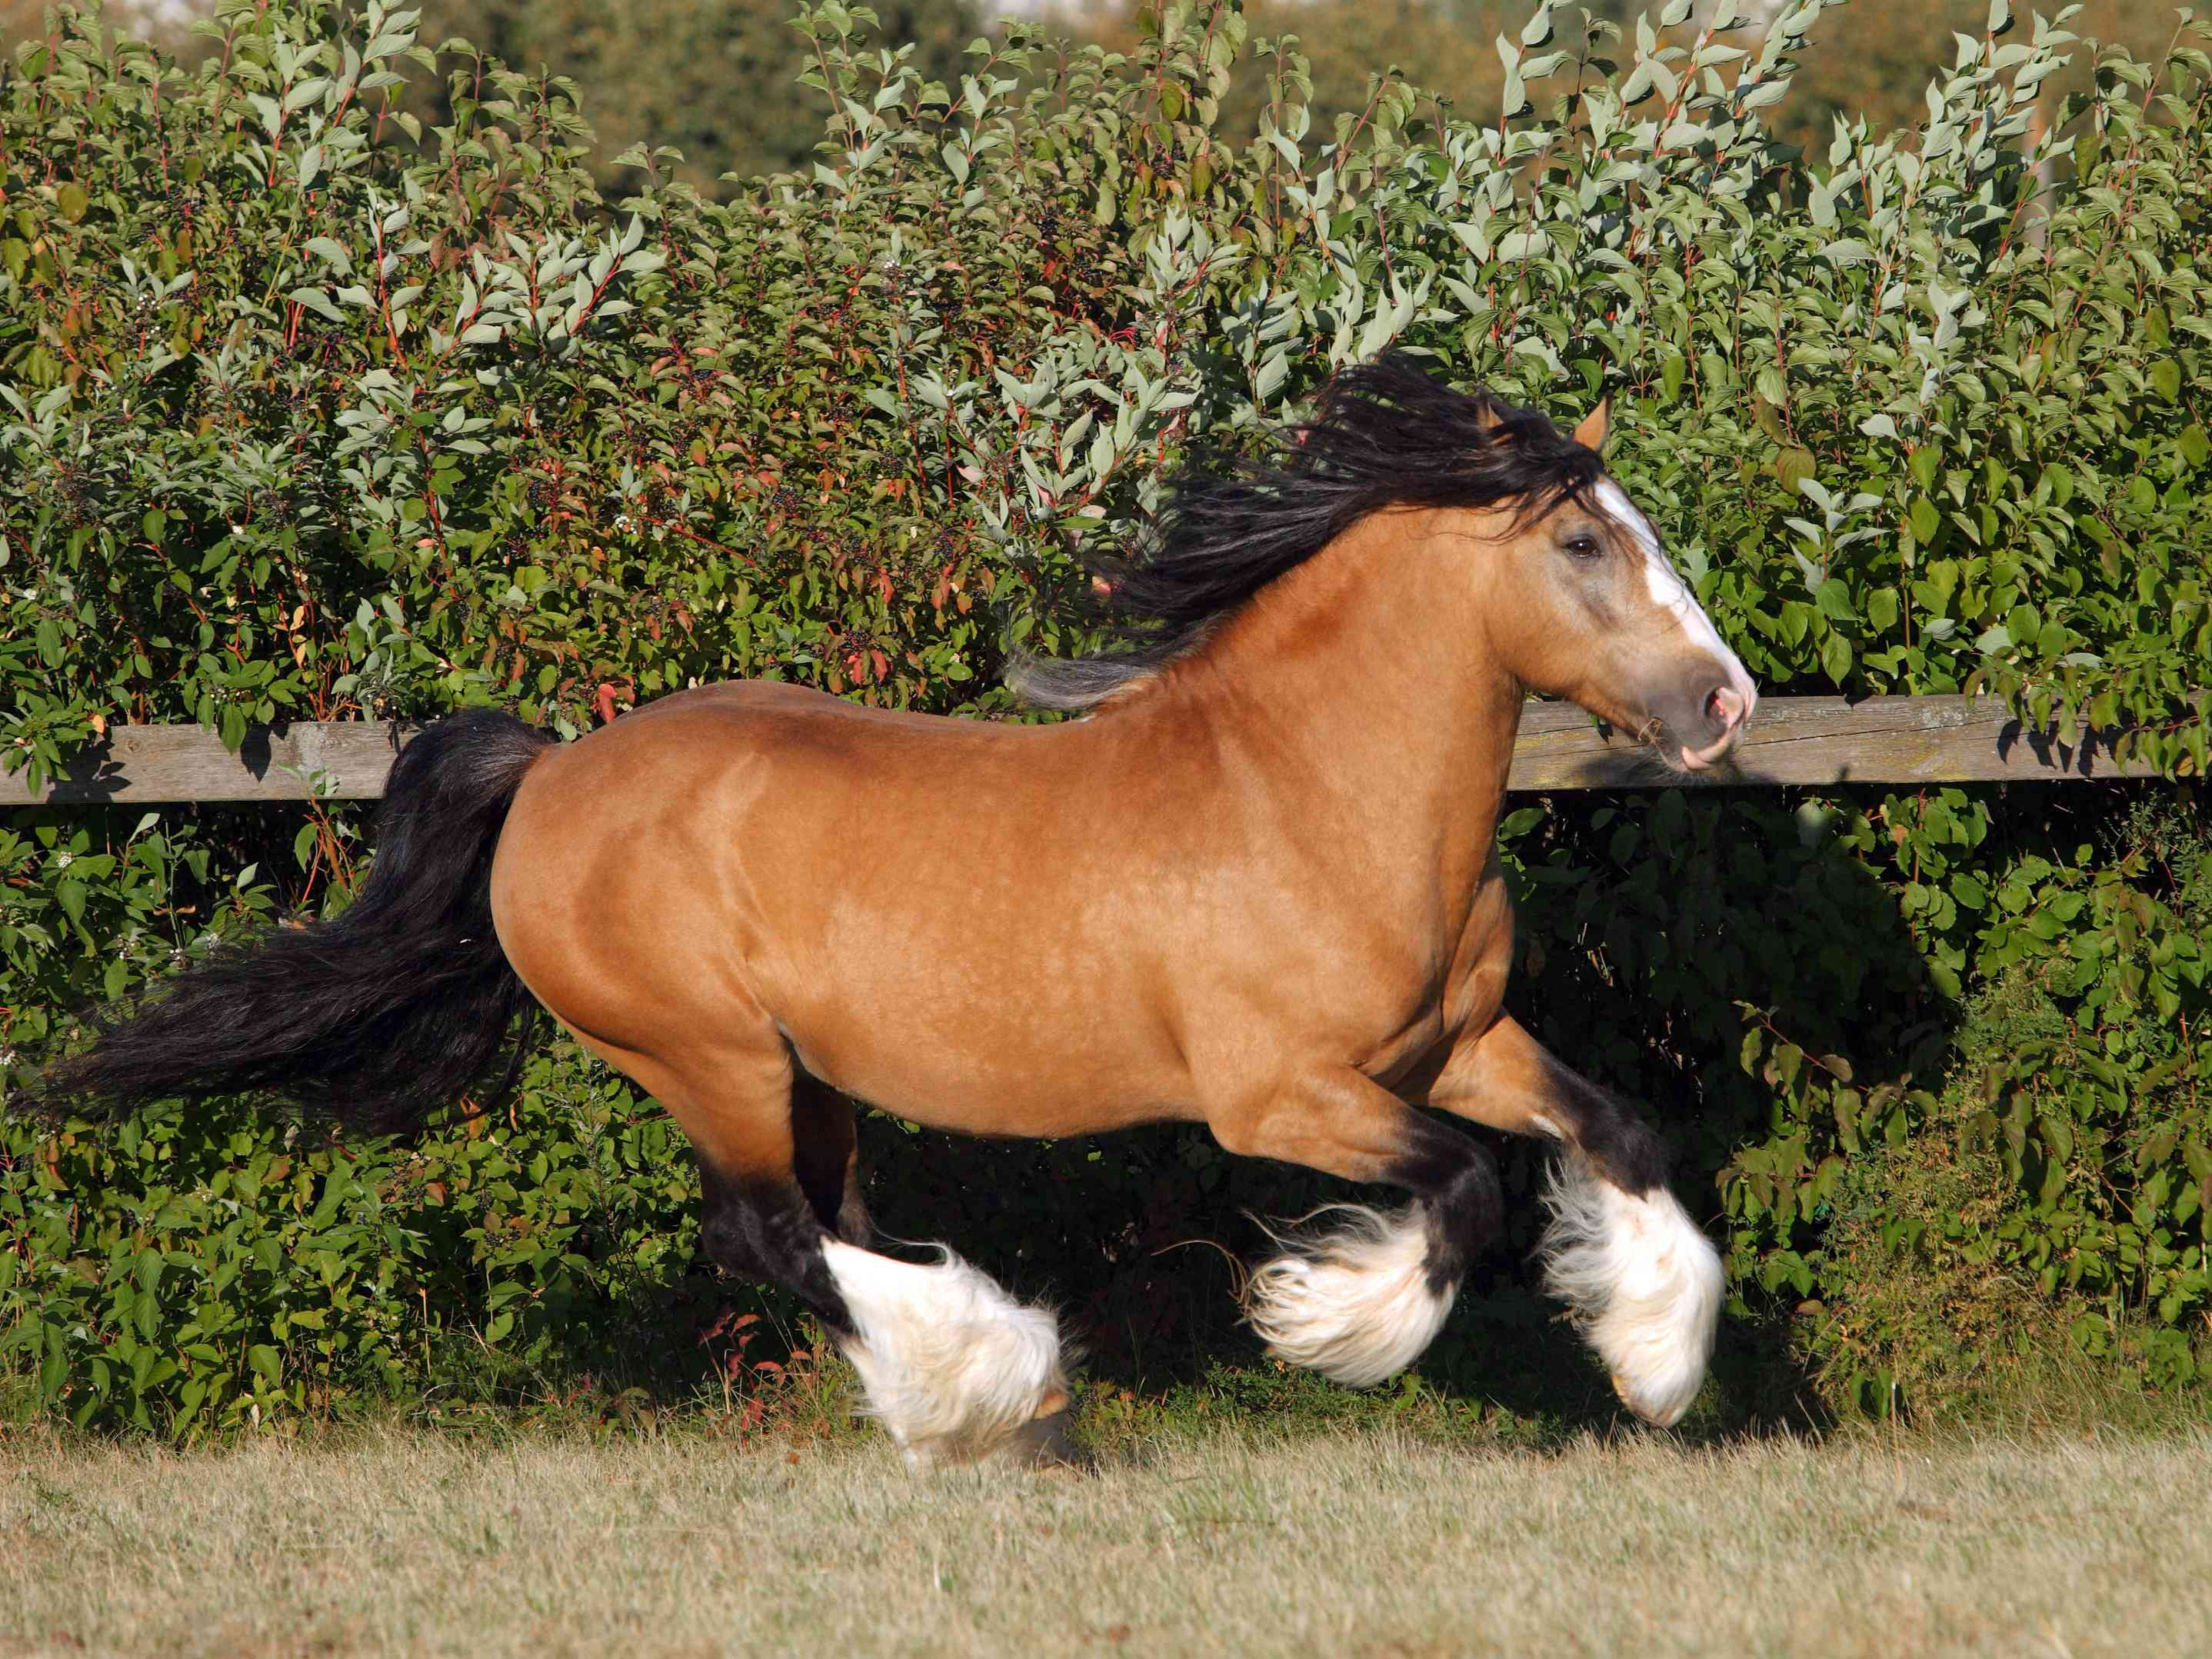 Bay Gypsy Vanner cantering in turnout.